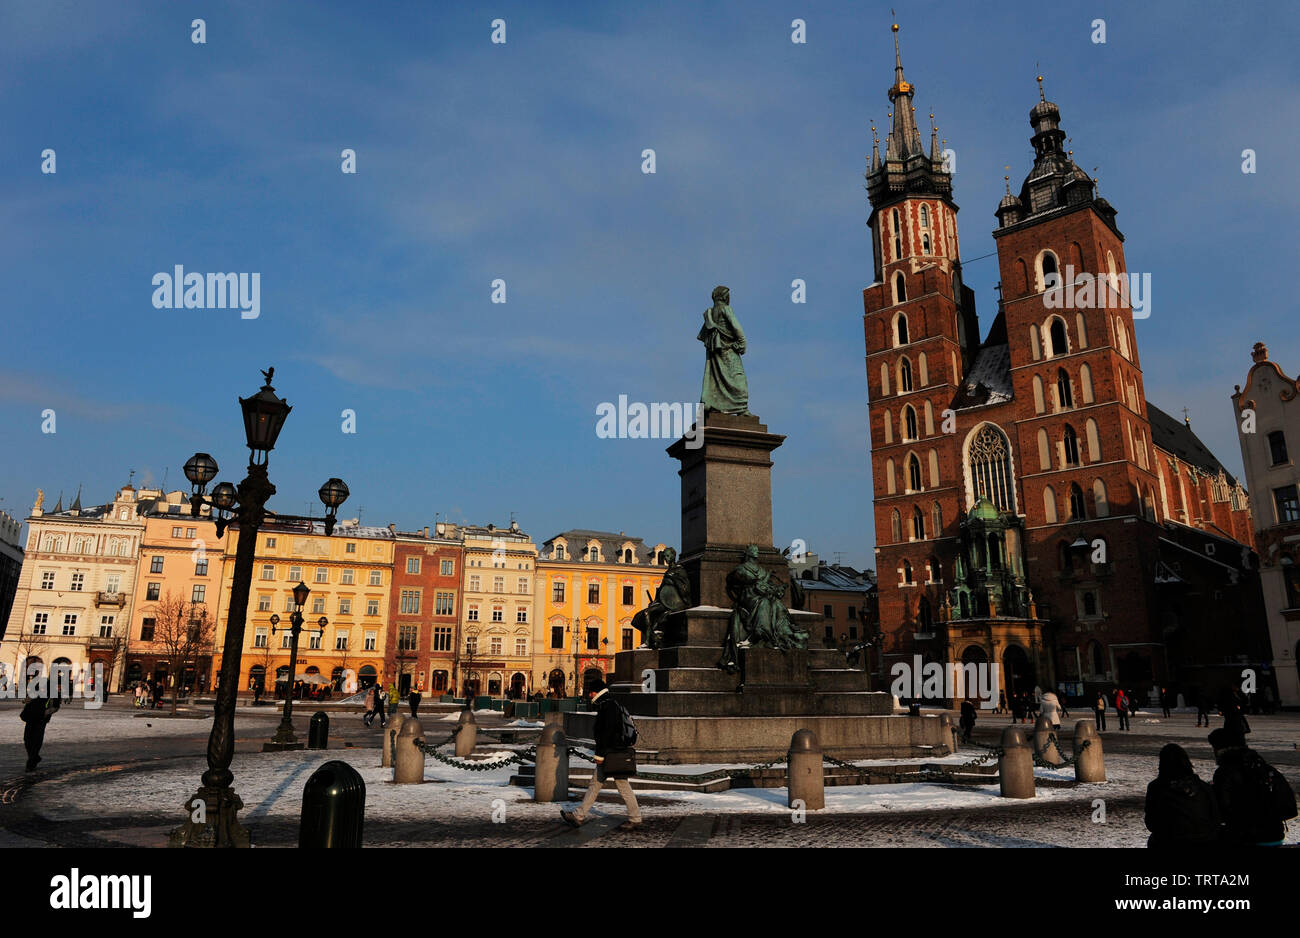 Poland. Krakow. Main Market Square. Adam Mickiewicz Monument in front of the St. Mary's Basilica, built in 14th century in Brick Gothic architecture style. - Stock Image